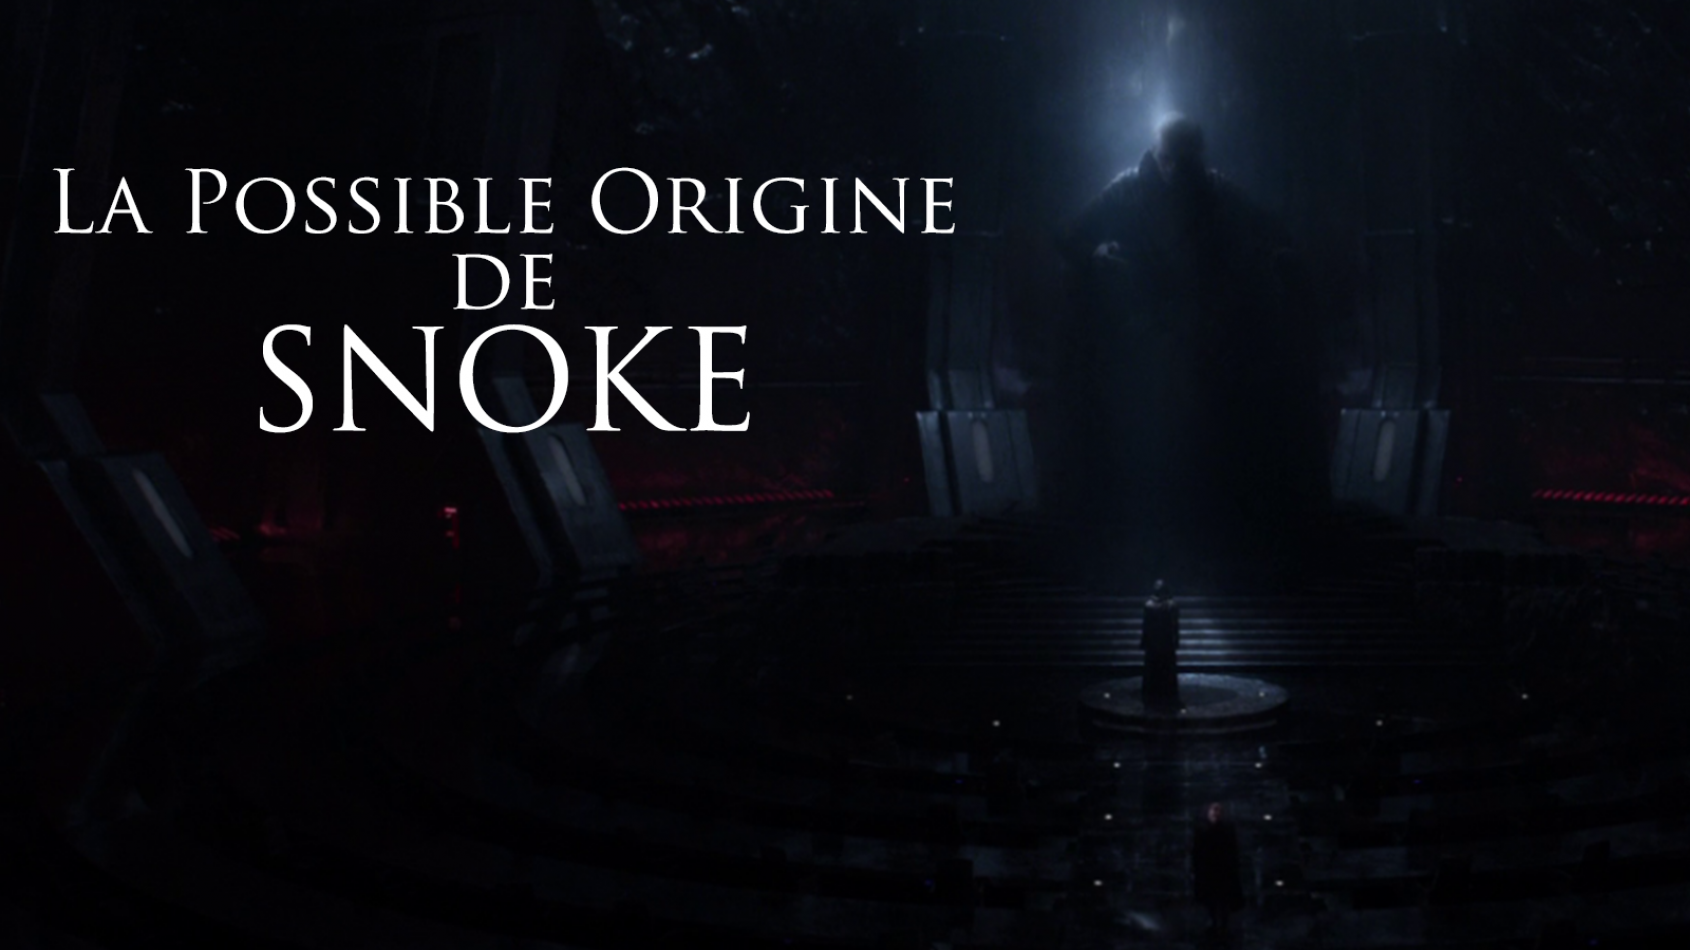 La possible origine de Snoke